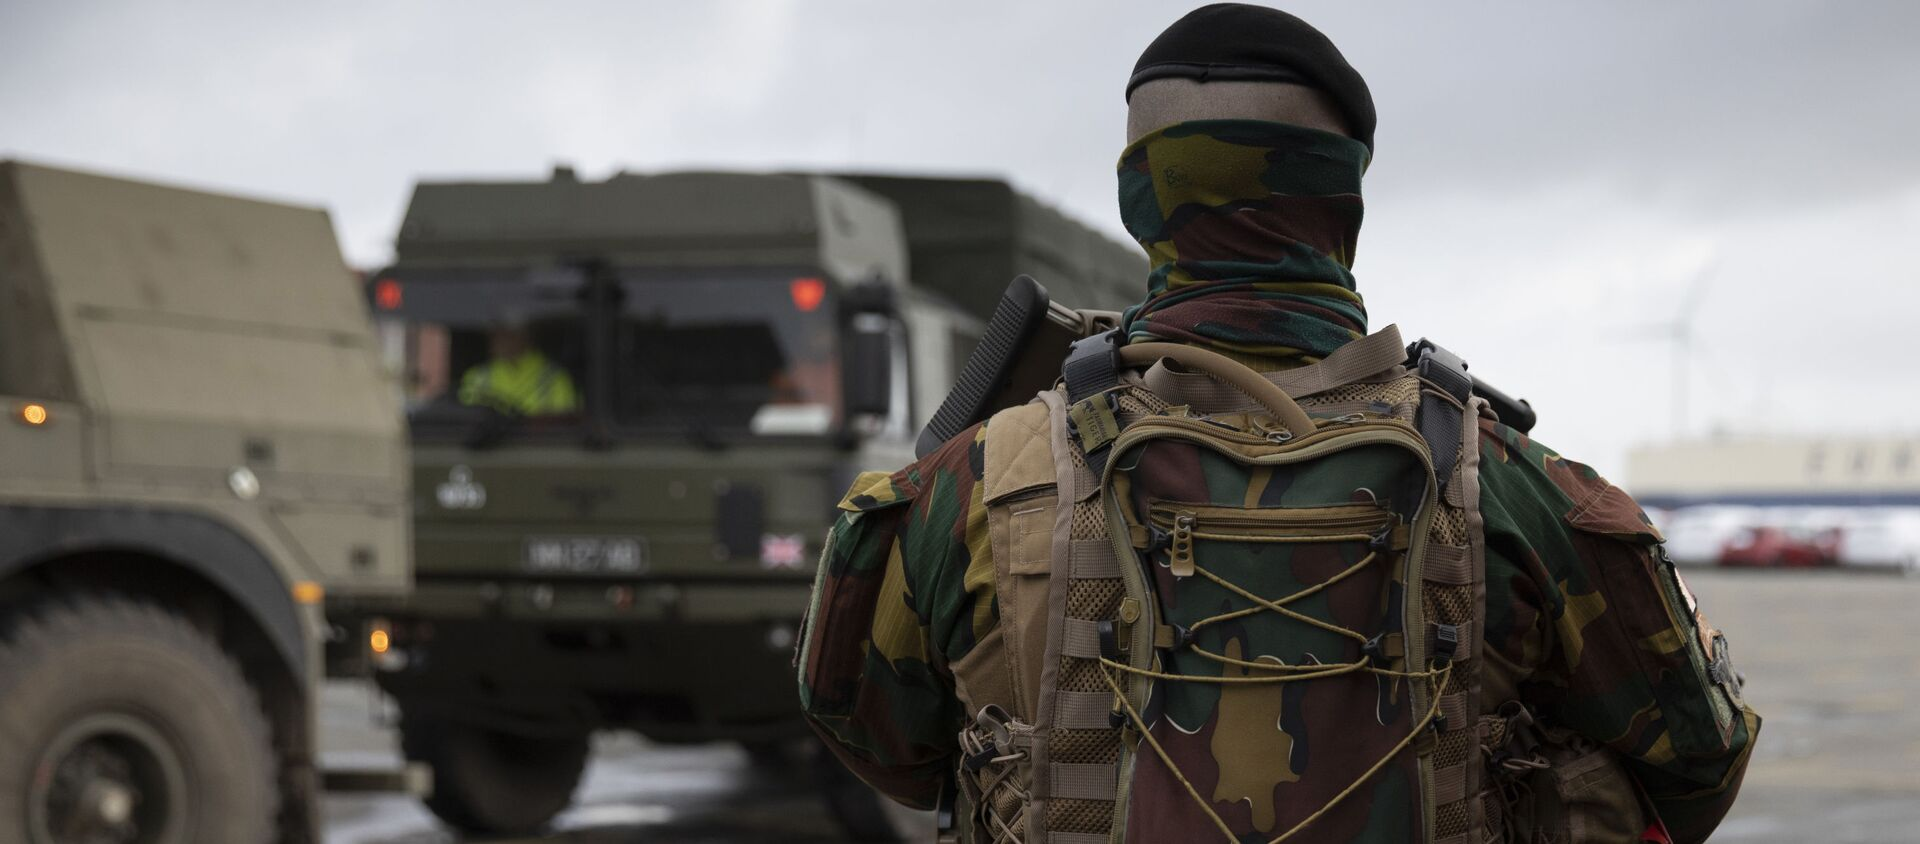 A Belgian solider patrols in a temporary military zone as vehicles arrive from a British naval vessel, taking part in U.S.-led war games, at the Port of Antwerp in Antwerp, Belgium, Monday Feb. 3, 2020. The Defender-Europe 2020 exercises will involve approximately 20,000 American troops; the biggest deployment of U.S.-based soldiers to Europe in 25 years. - Sputnik Italia, 1920, 17.03.2021